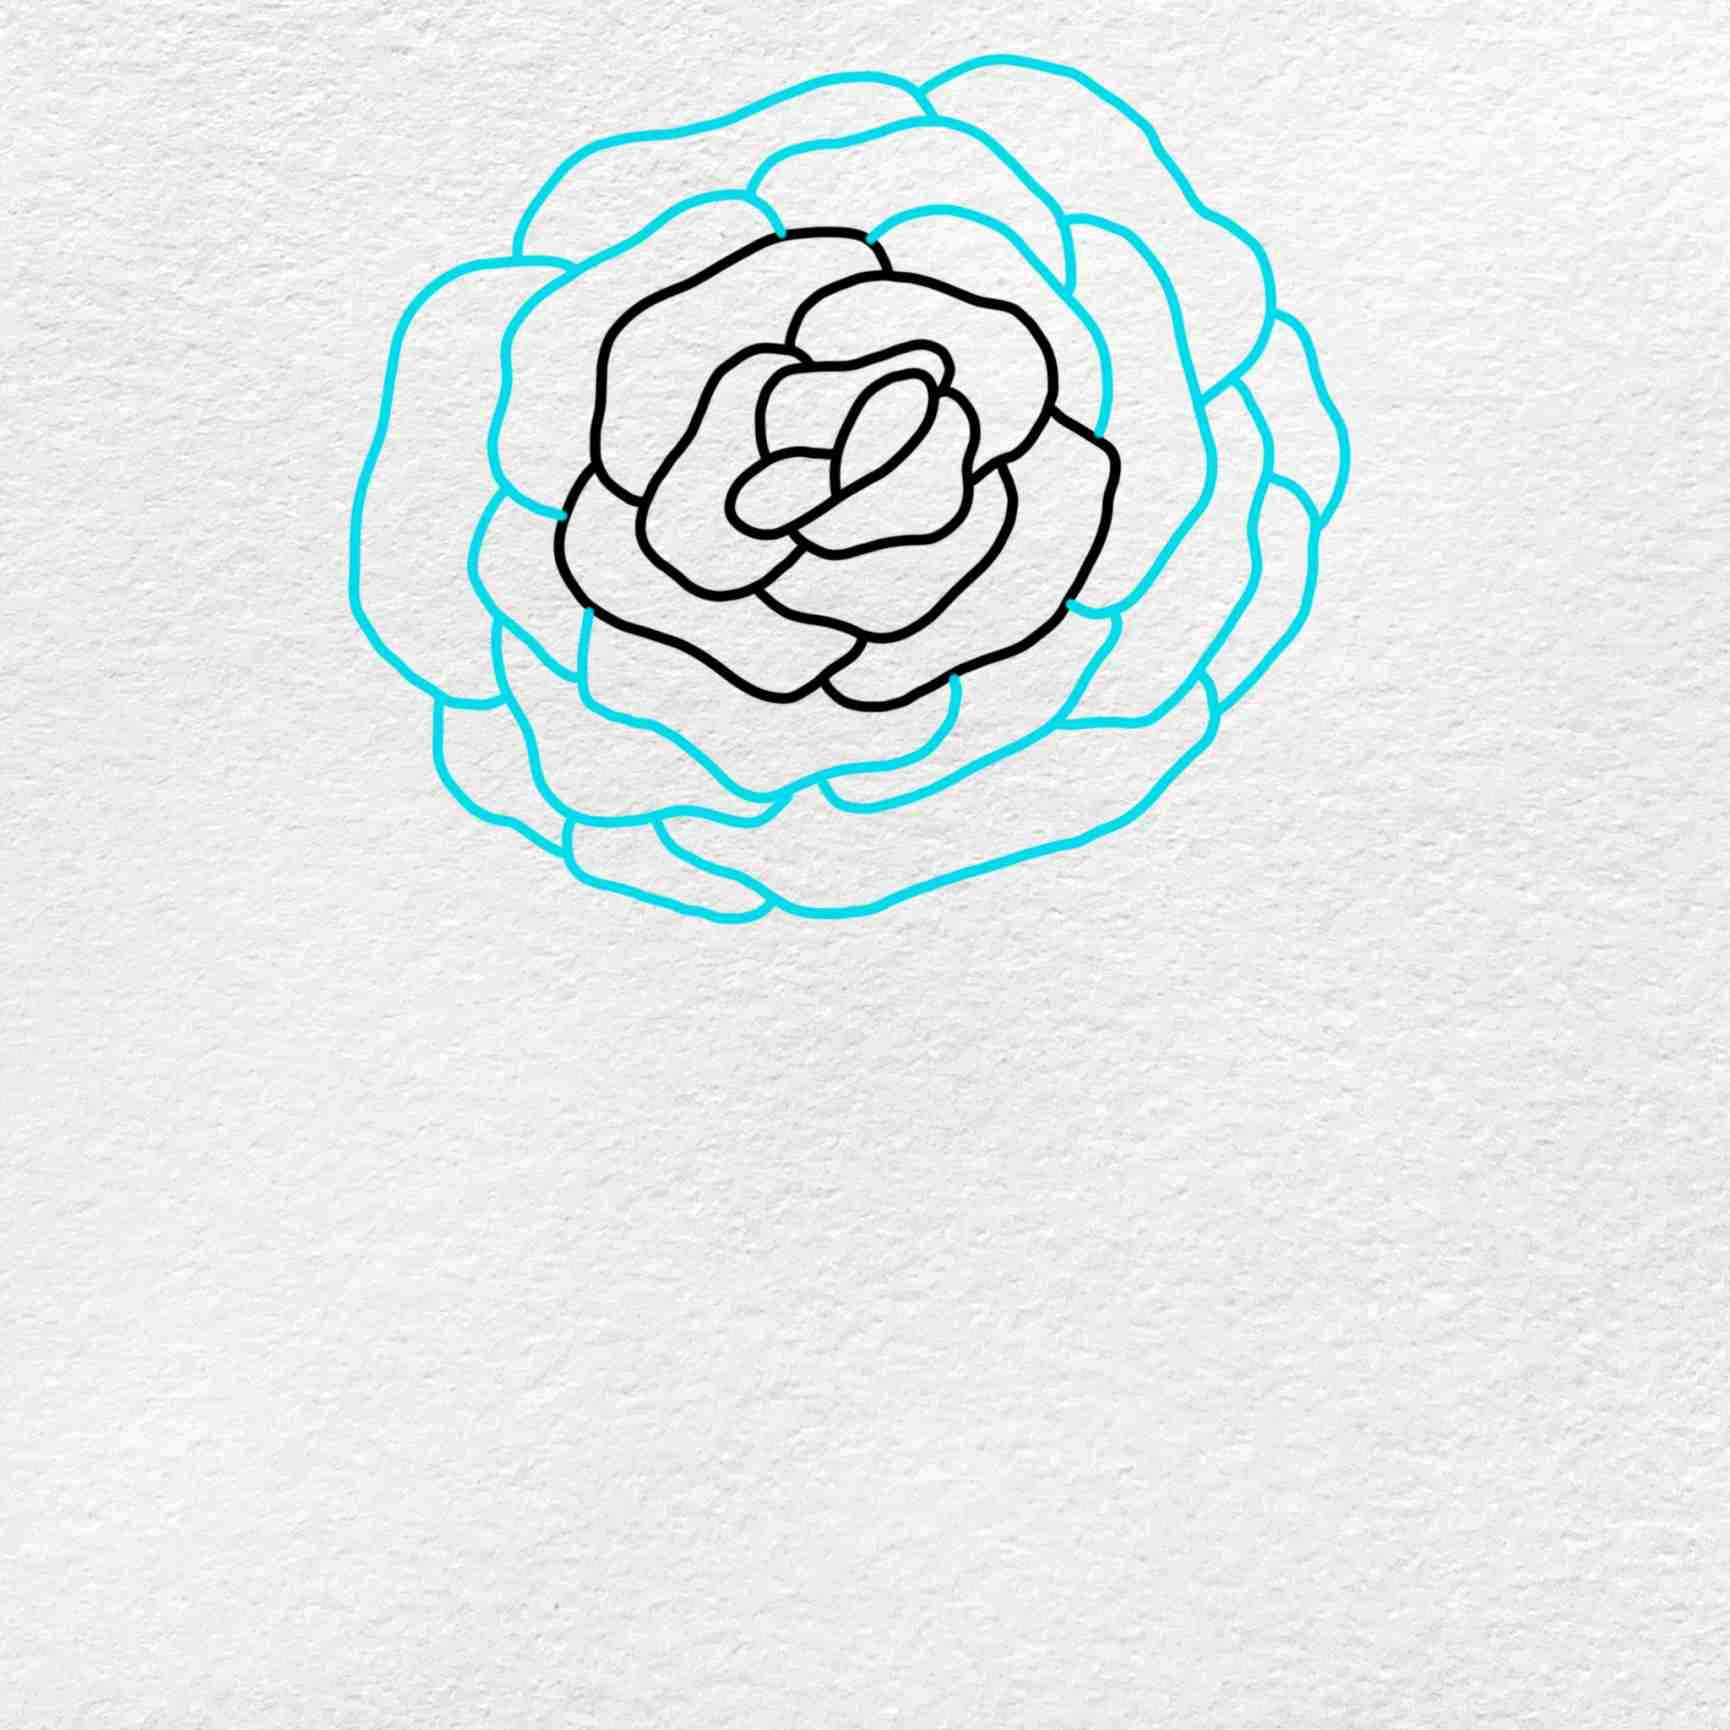 How To Draw A Rose Step By Step: Step 3